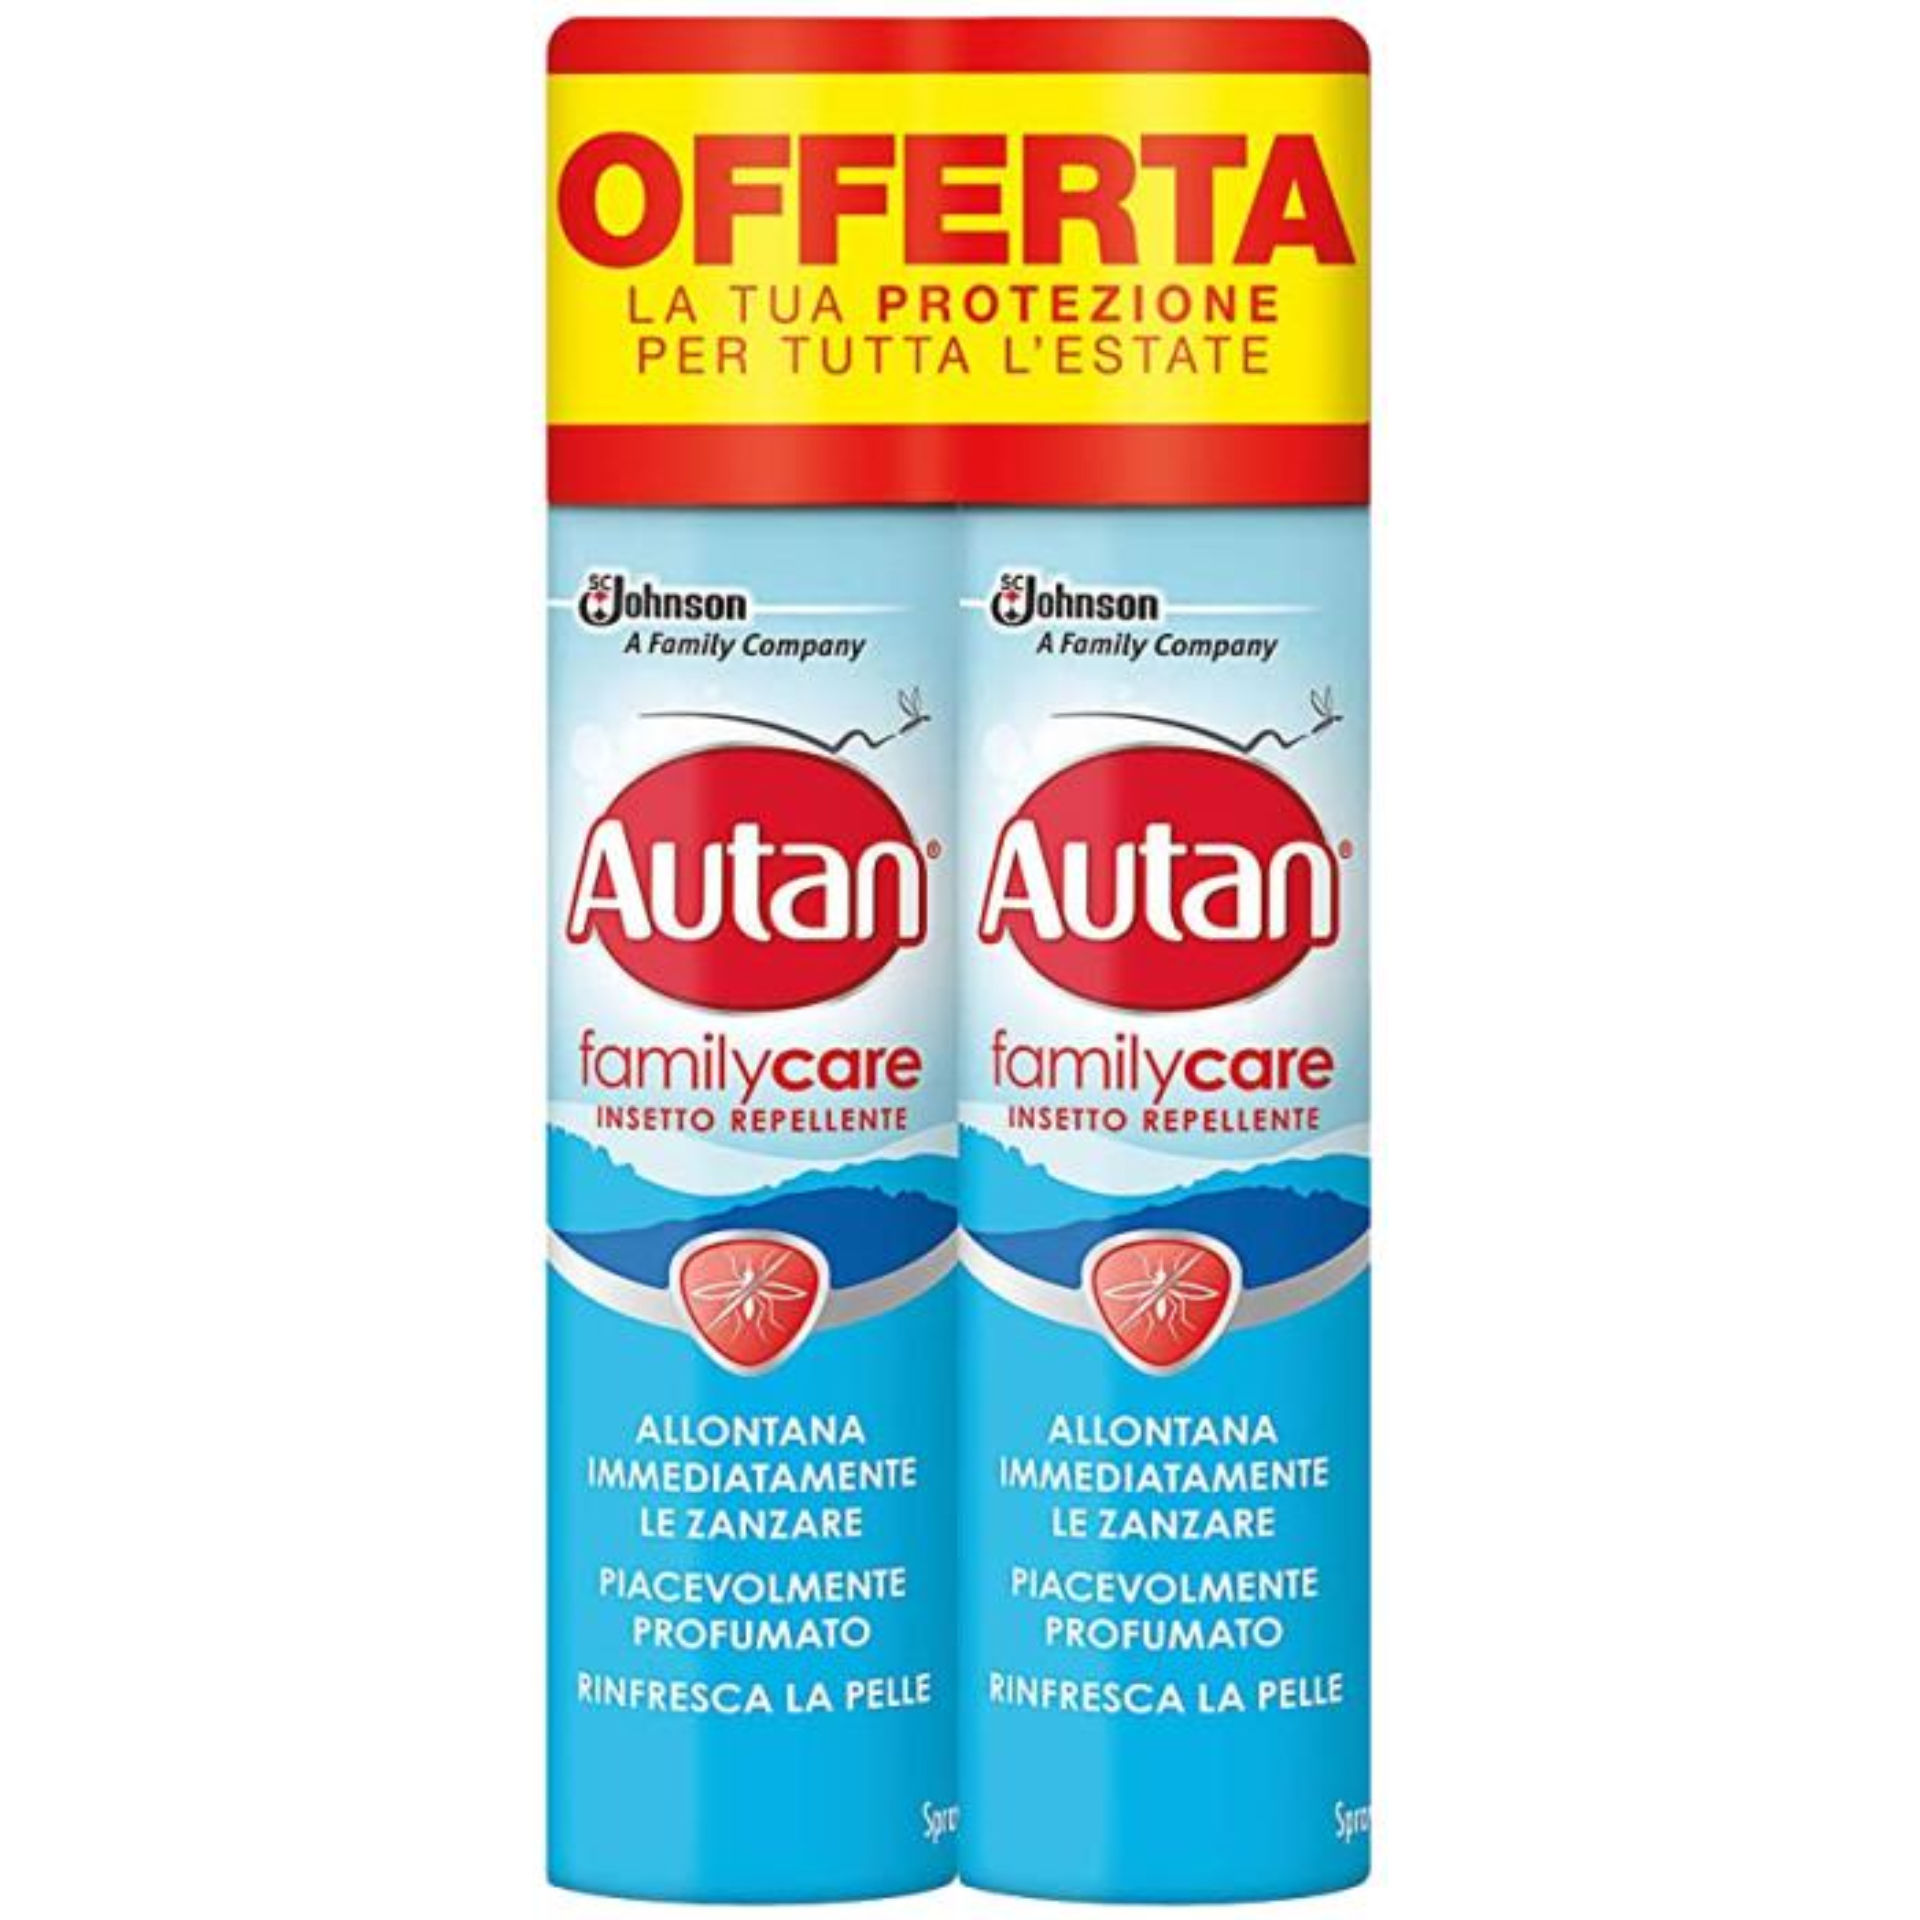 AUTAN FAMILY CARE SPR 100ML BIPAC. A.455Autan